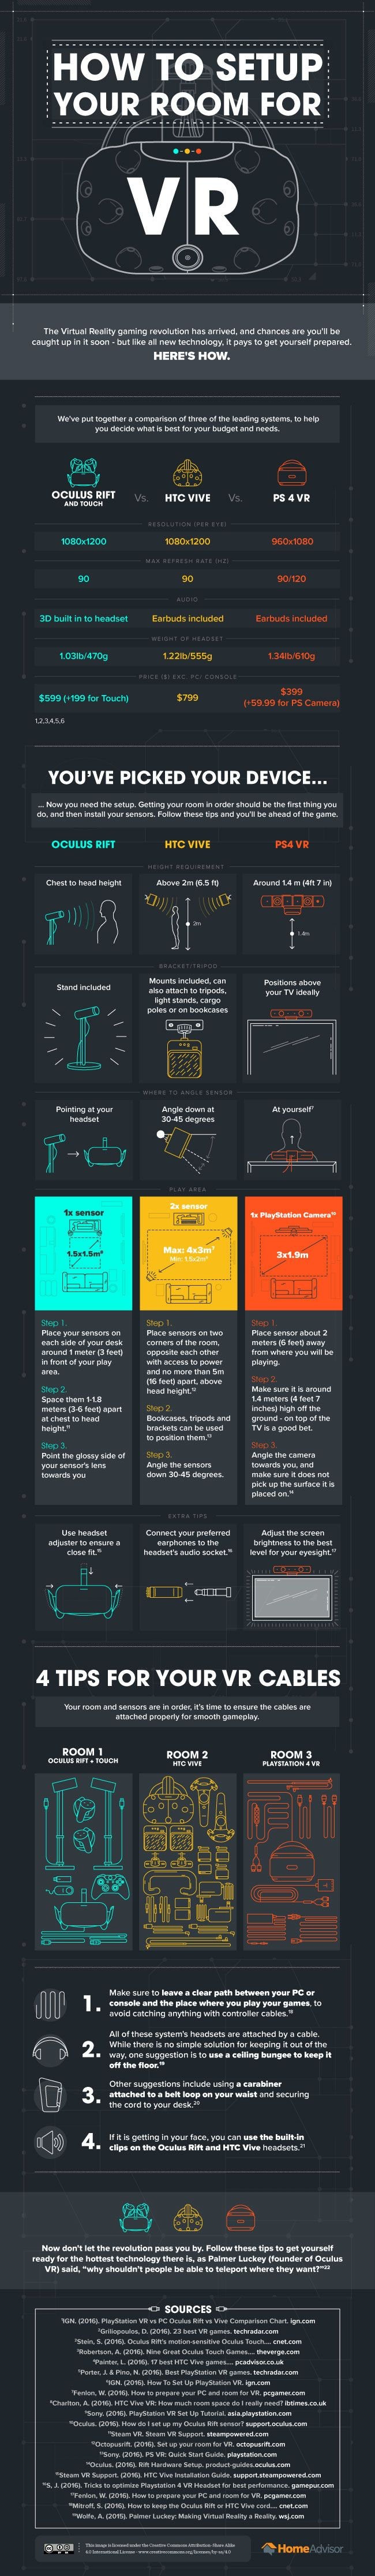 How to Setup Your VR Room [Infographic] - Best Infographics